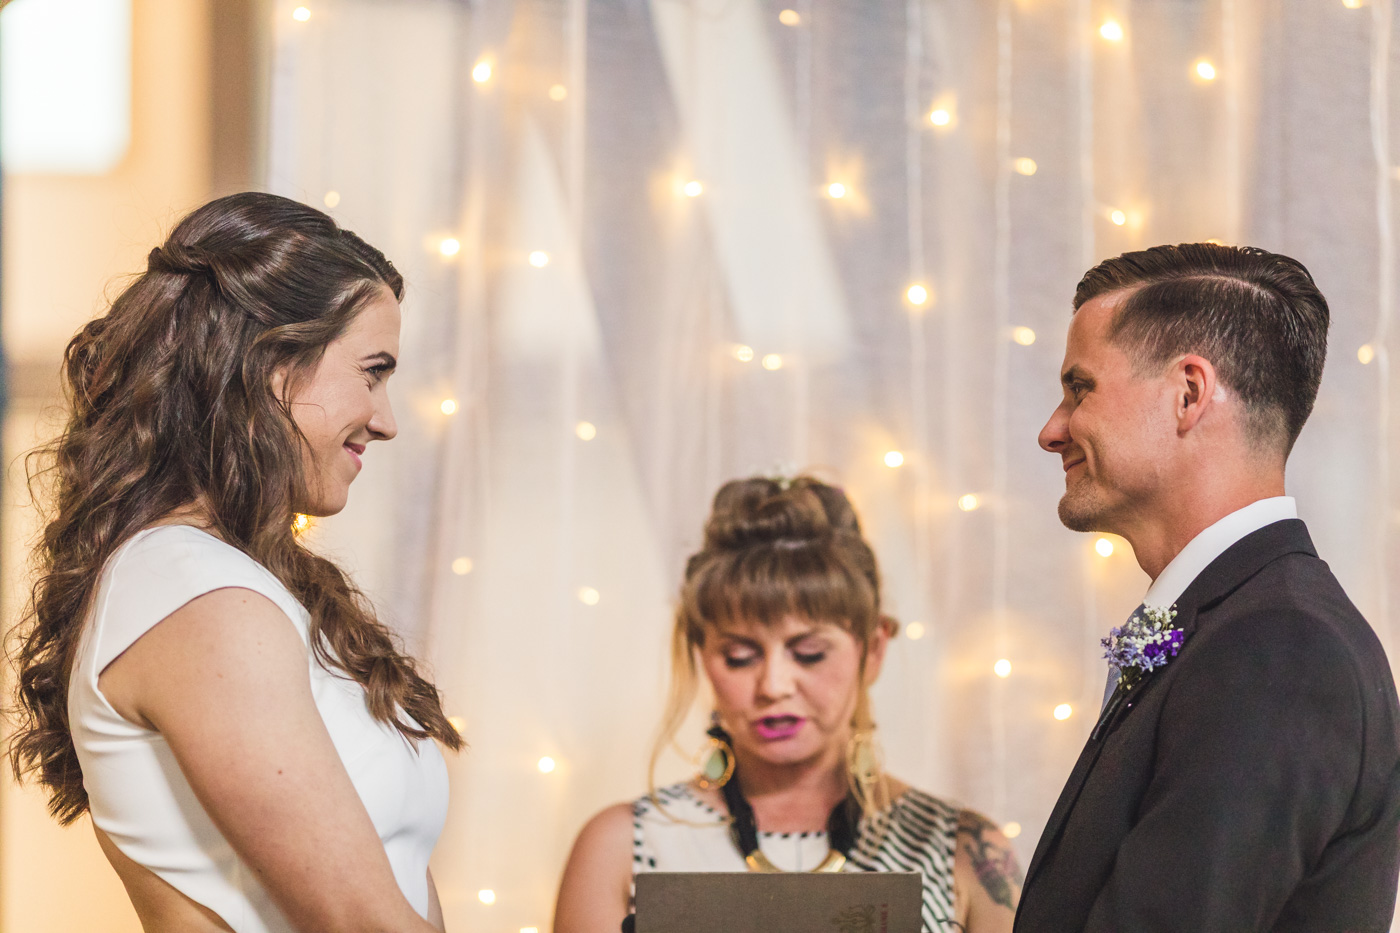 bride-and-groom-smiling-at-wedding-ceremony